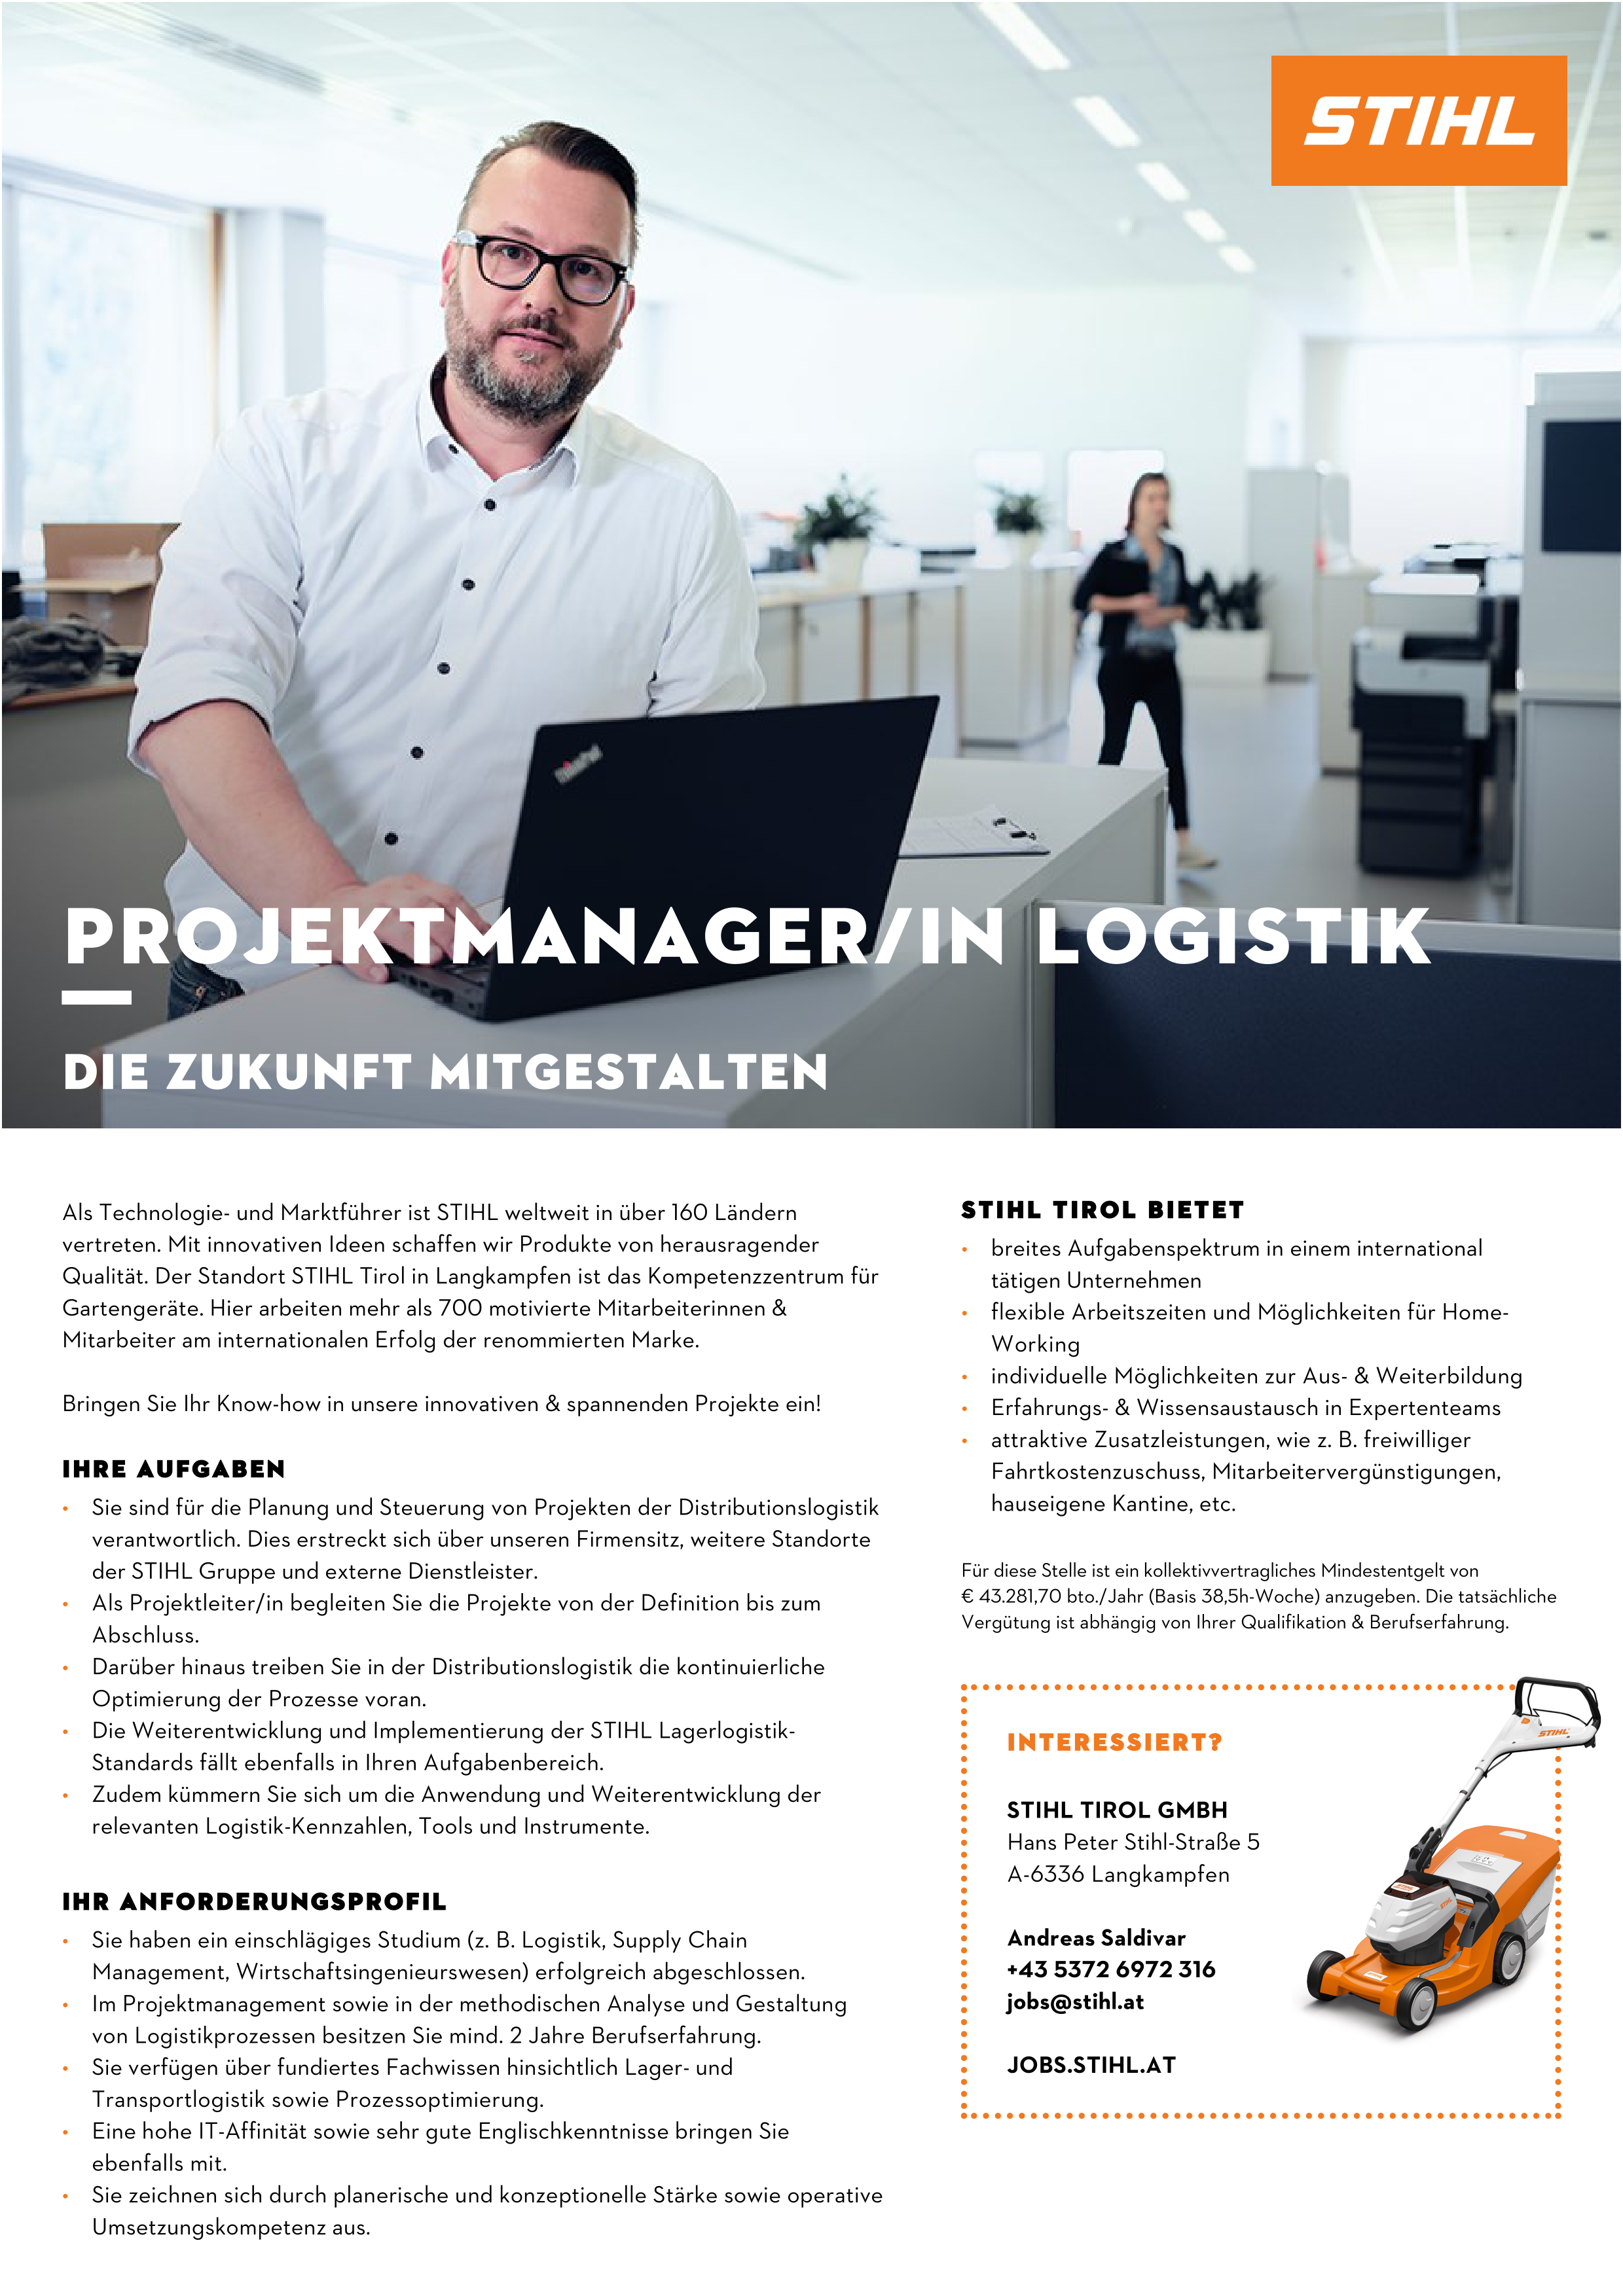 Projektmanager/in Logistik